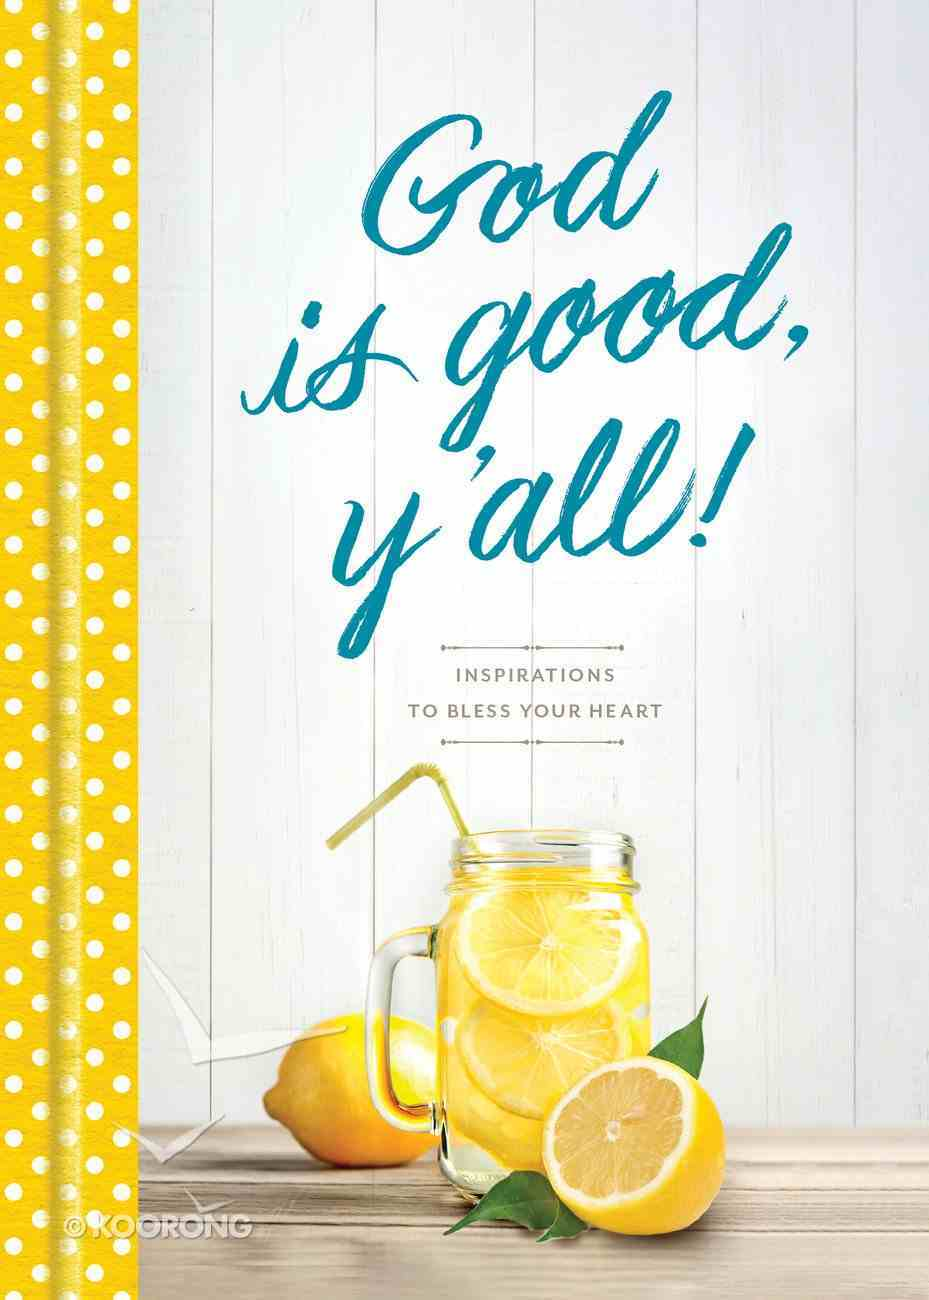 God is Good, Y'all!: Inspirations to Bless Your Heart Hardback